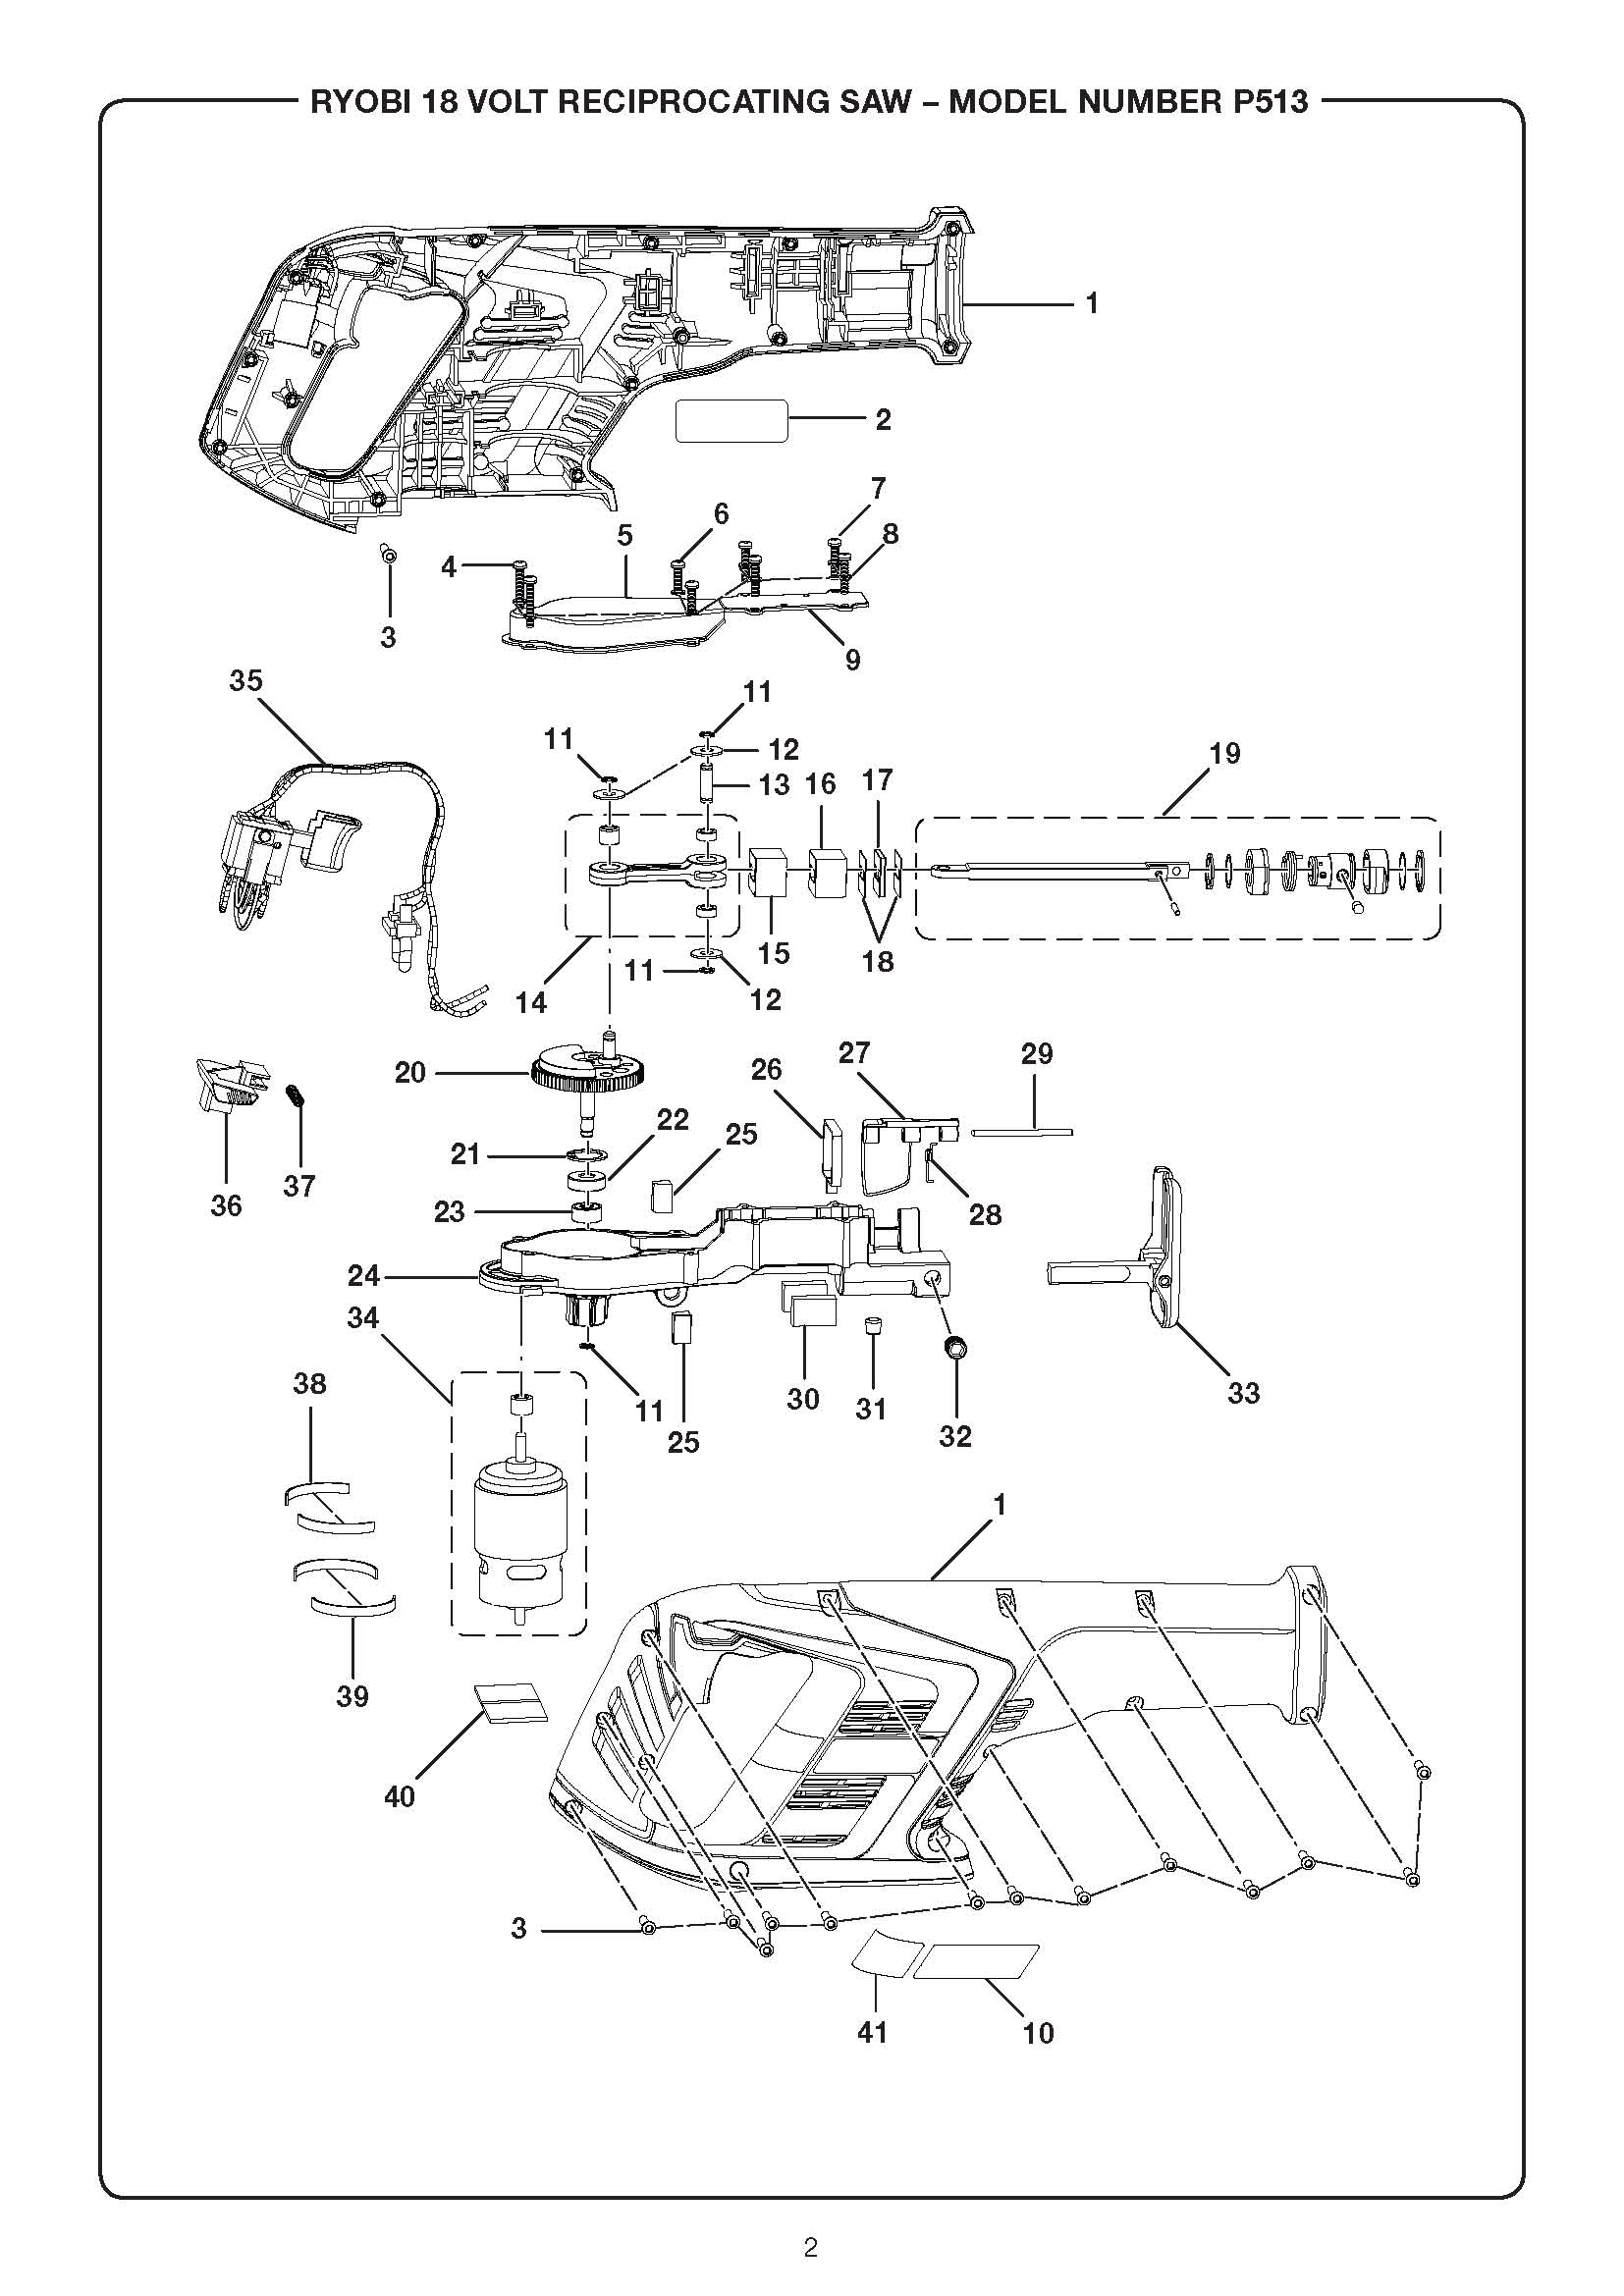 P513 - Cordless Reciprocating Saw Parts schematic